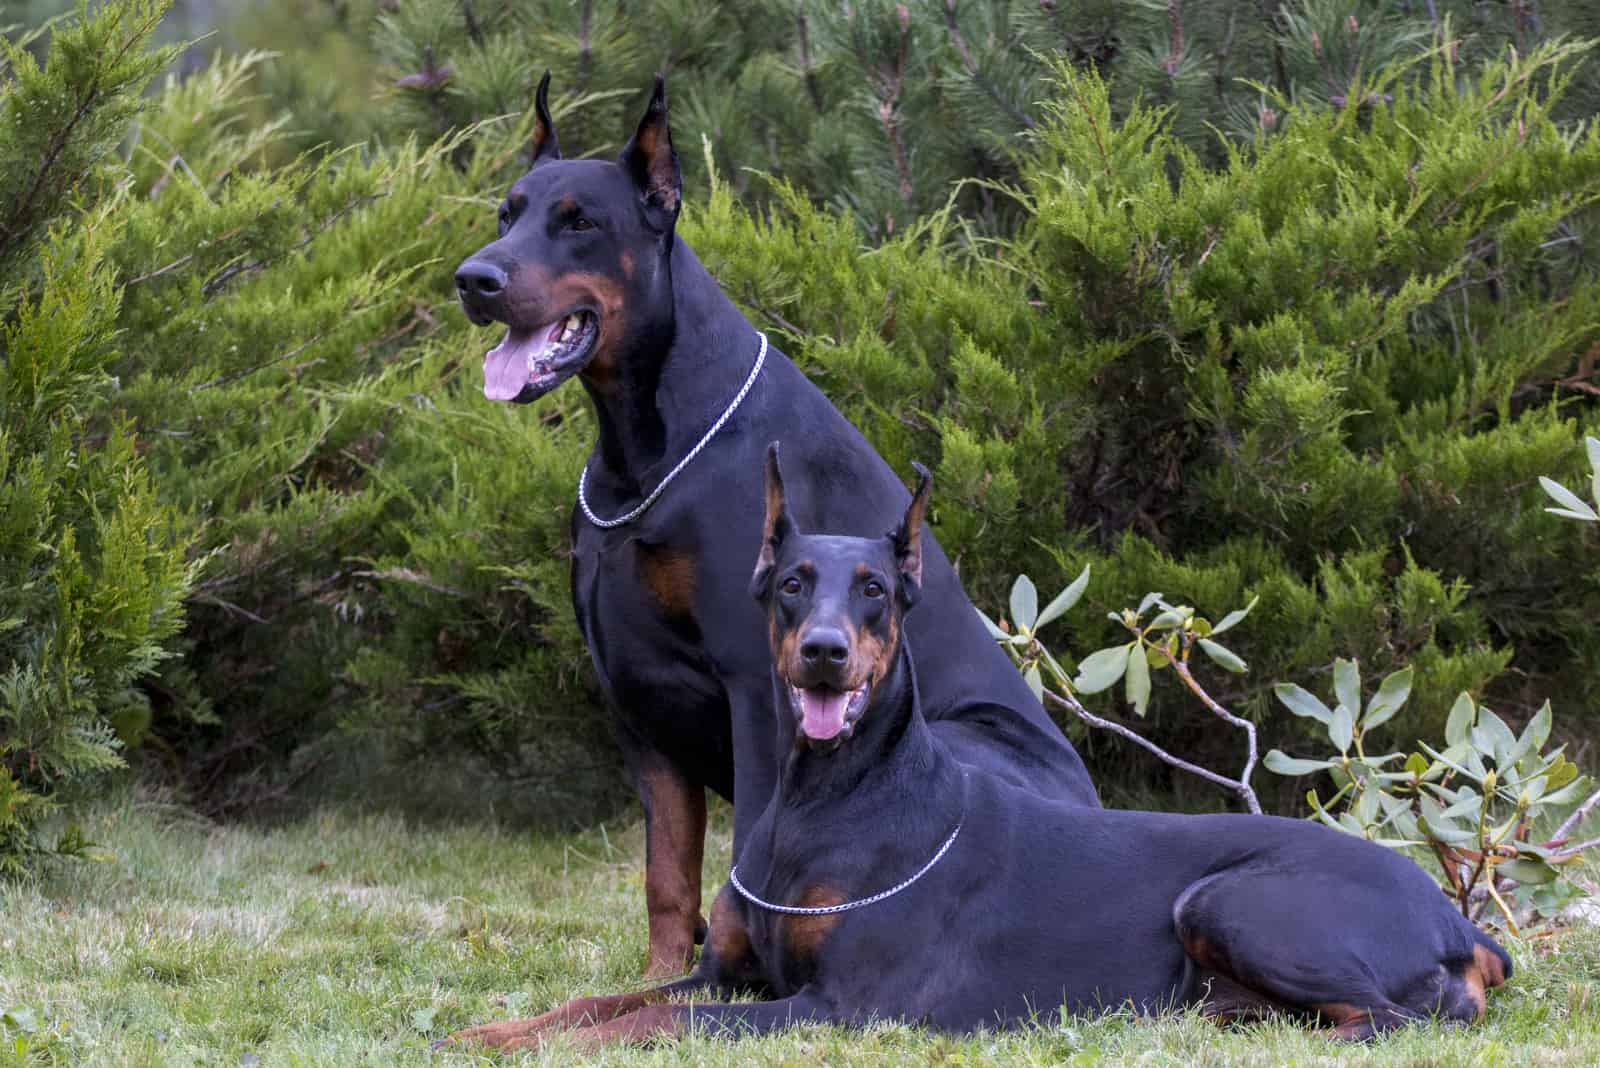 two Doberman dogs on the grass outdoors